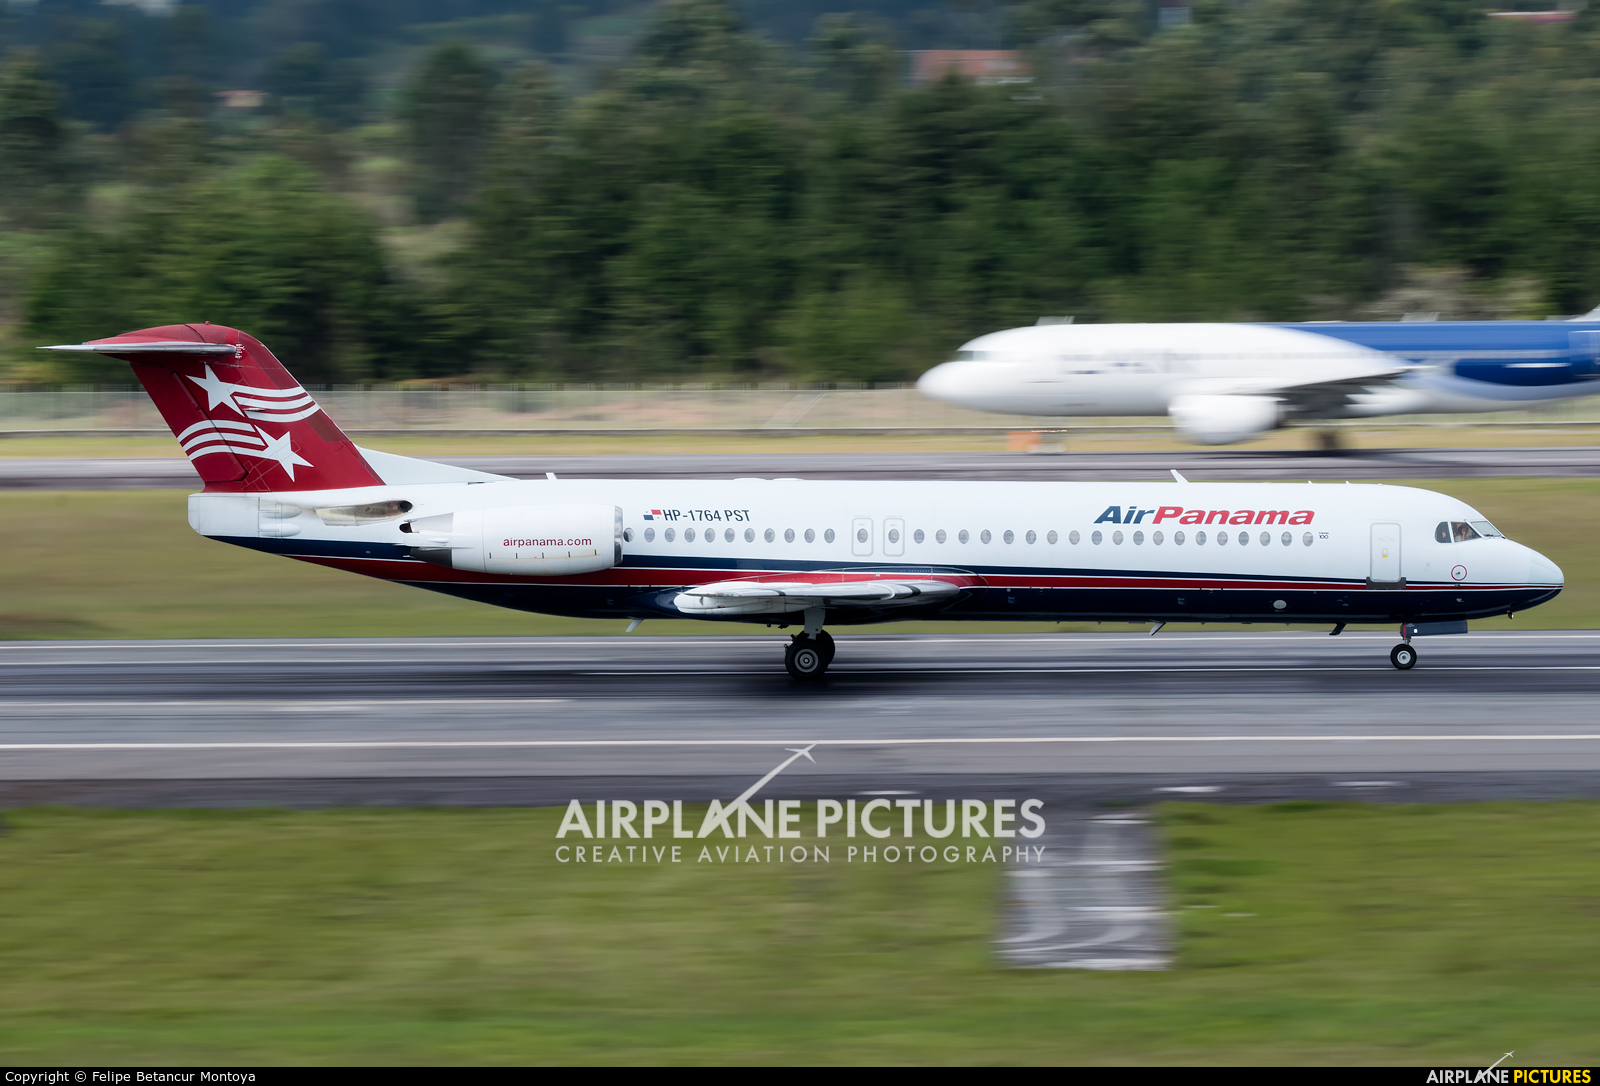 Air Panama HP-1764PST aircraft at Medellin - Jose Maria Cordova Intl